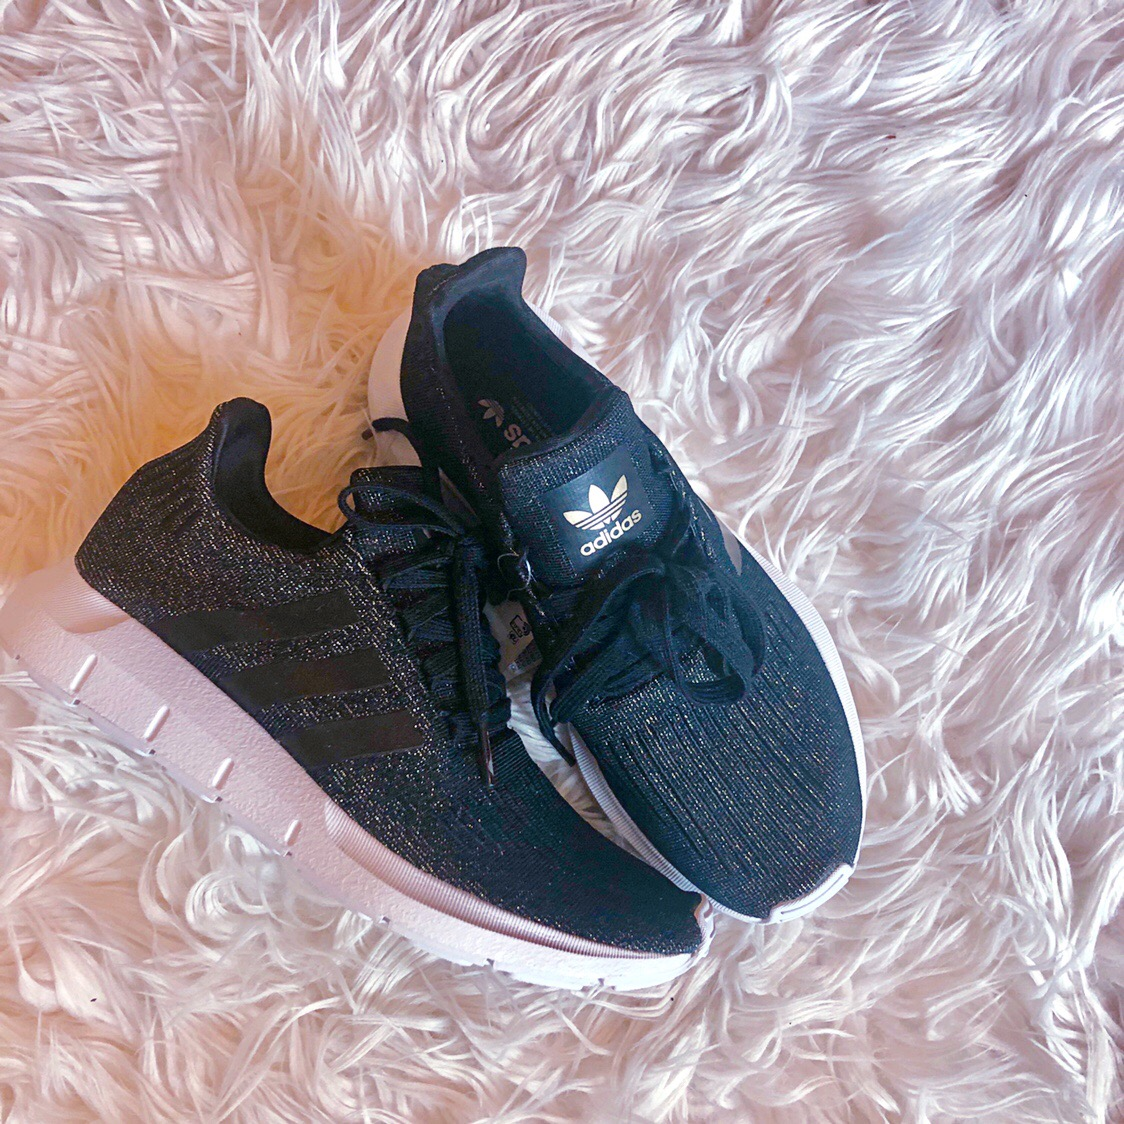 Nordstrom Anniversary Sale Athleisure, adidas swift run sneakers